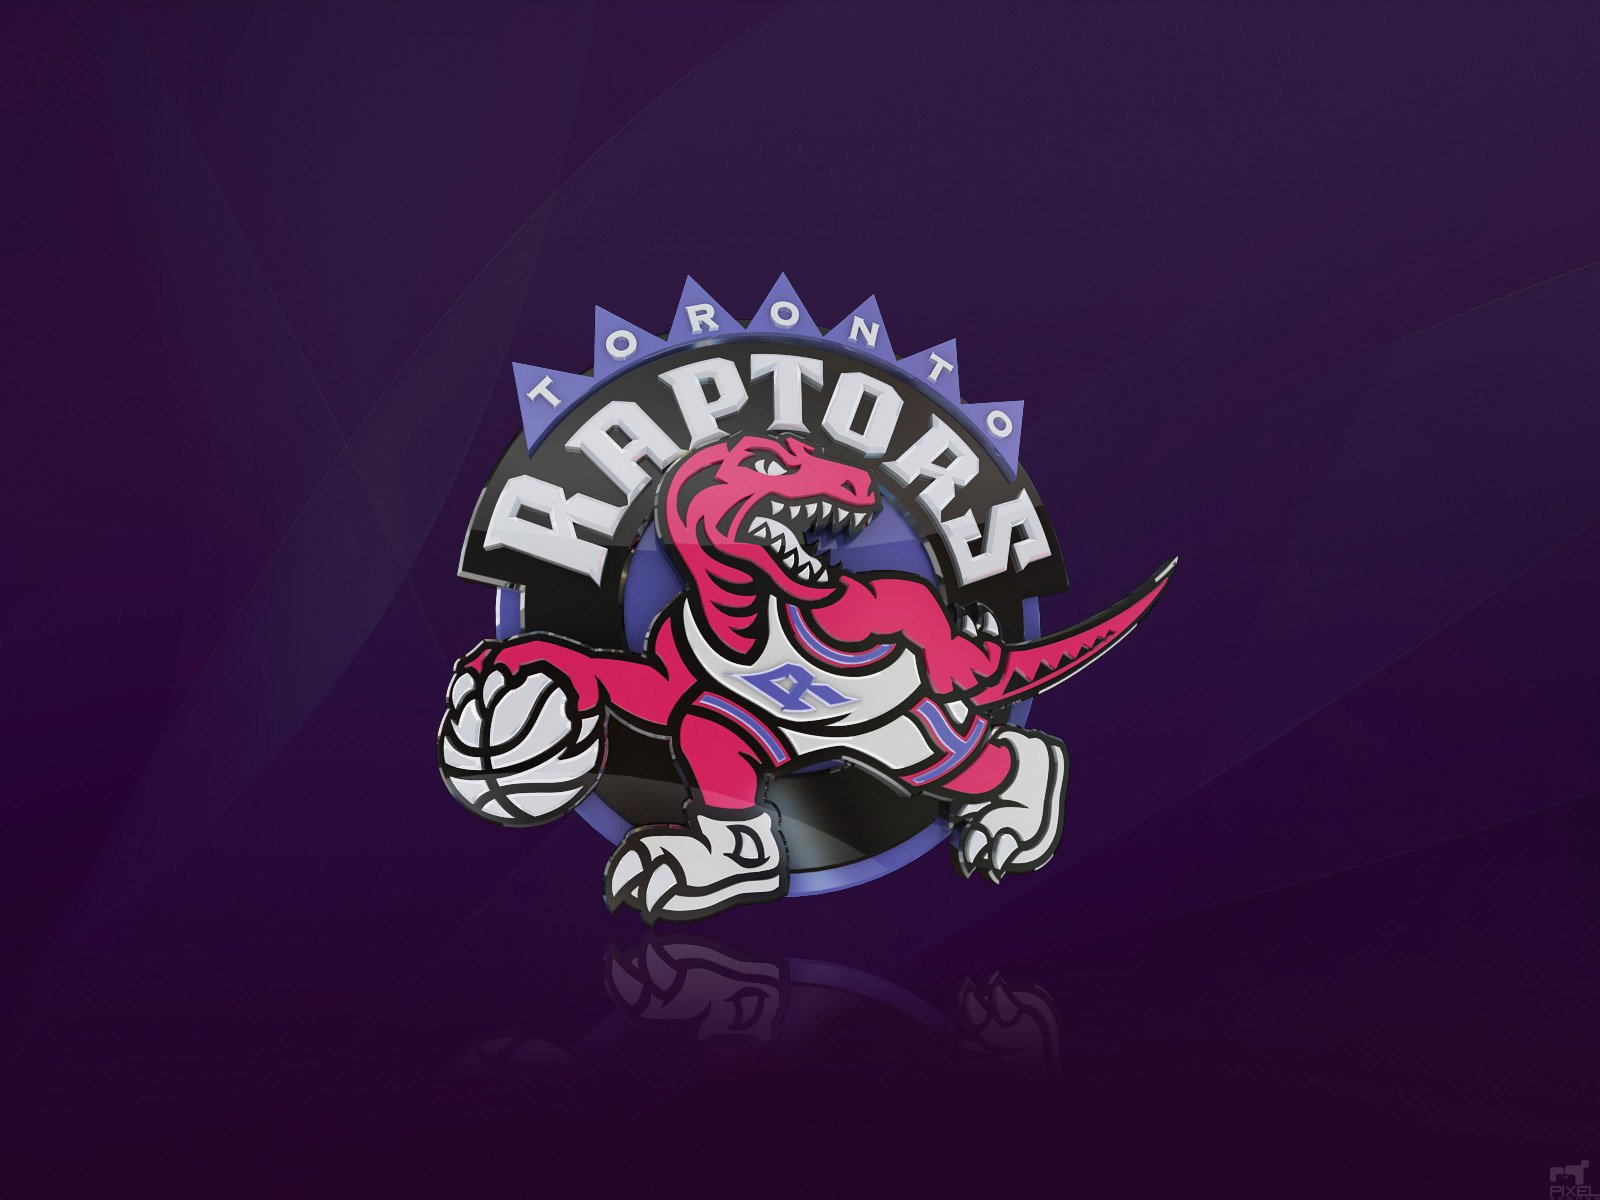 Toronto Raptors   NBA Team Wallpaper 1600x1200